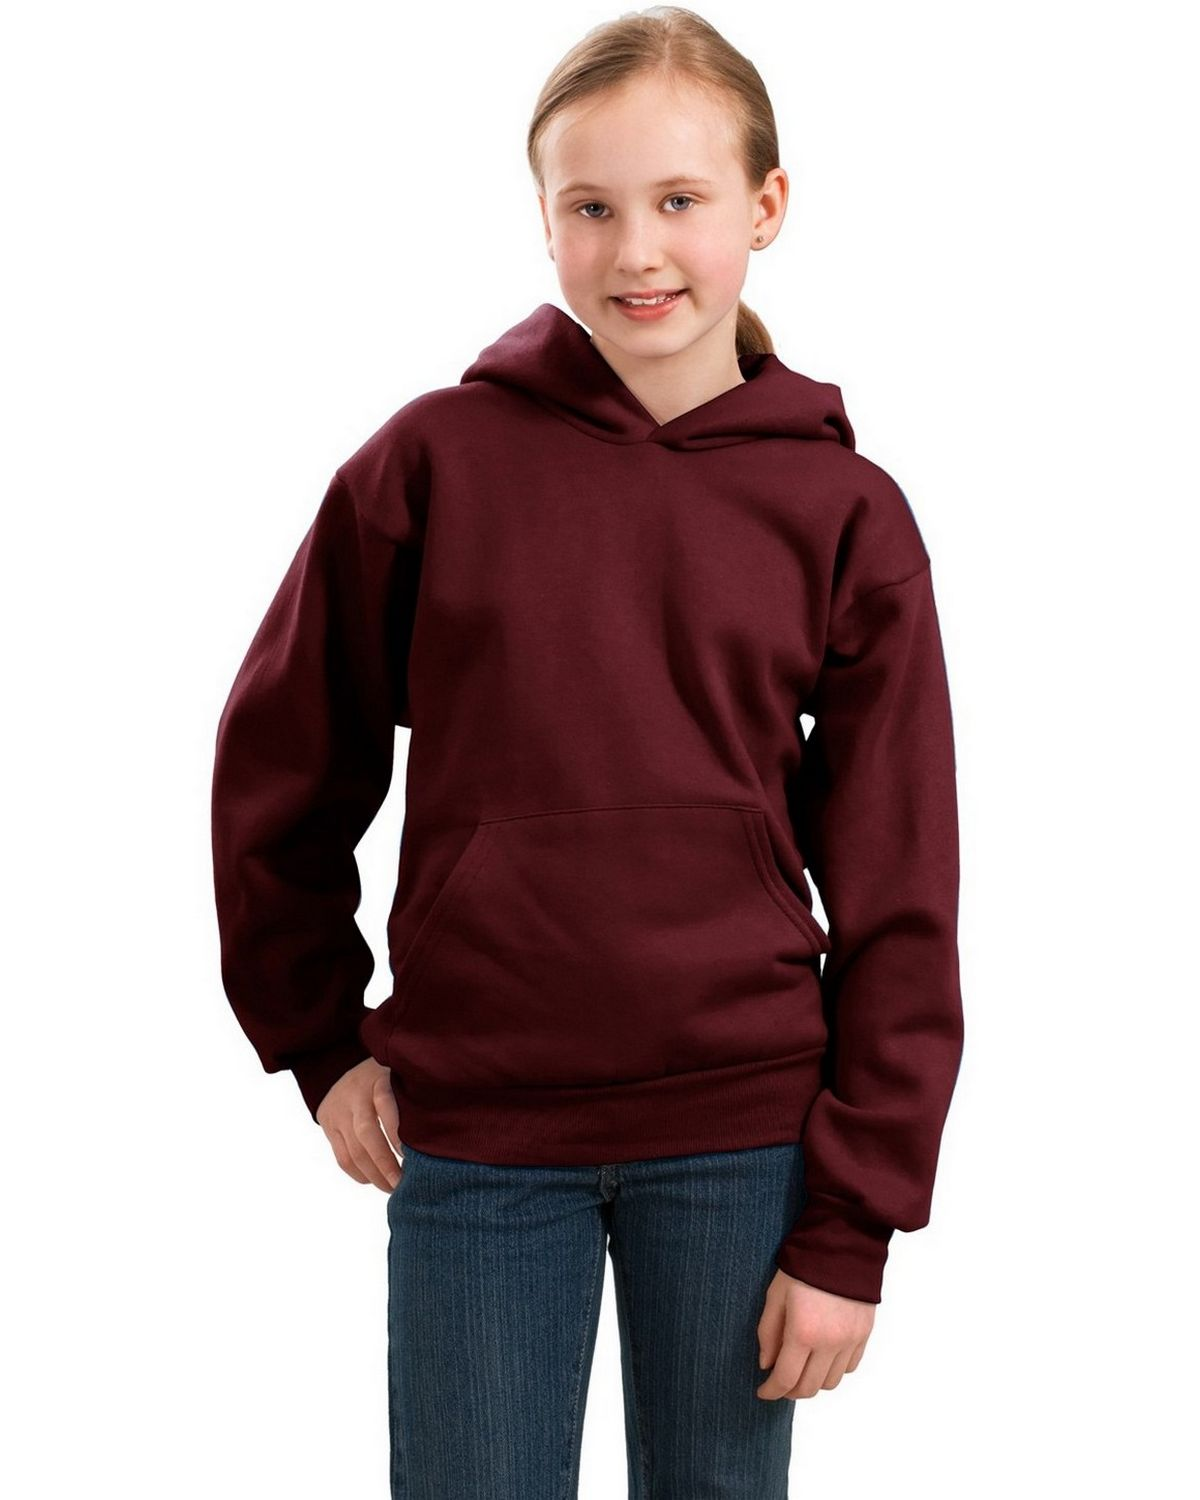 Port & Company PC90YH Youth Pullover Hooded Sweatshirt - Maroon - XS PC90YH